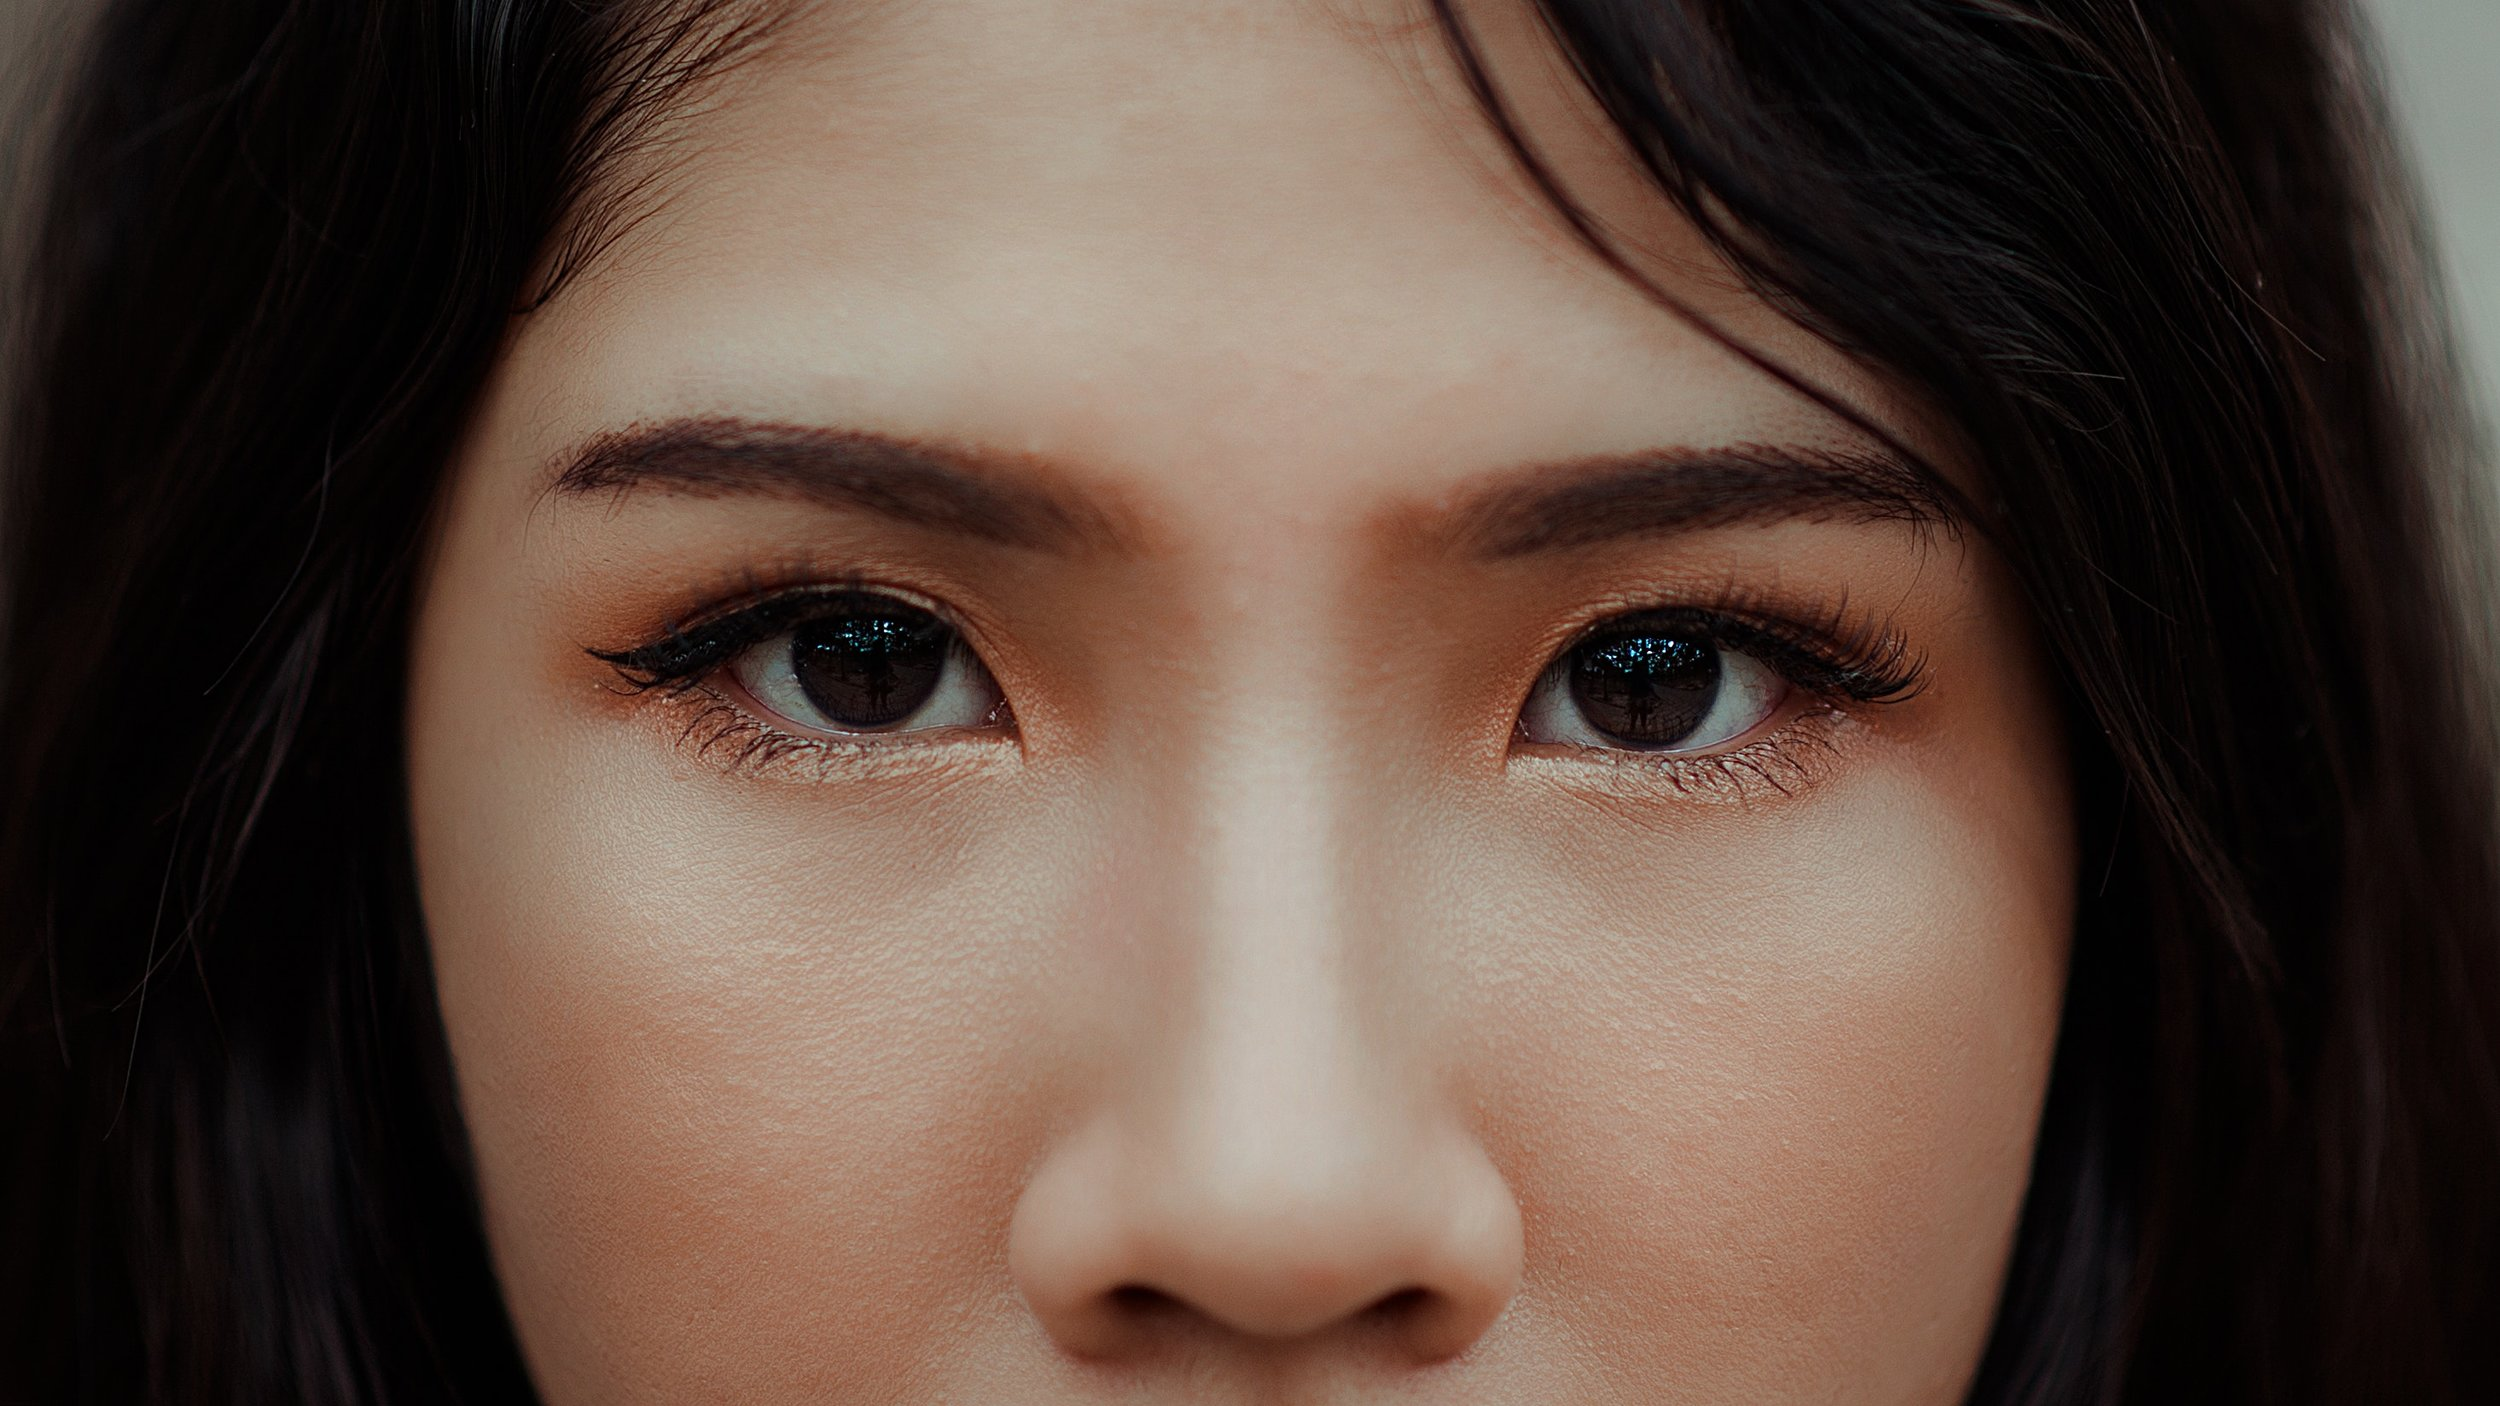 asian+woman's+eyes+and+skin